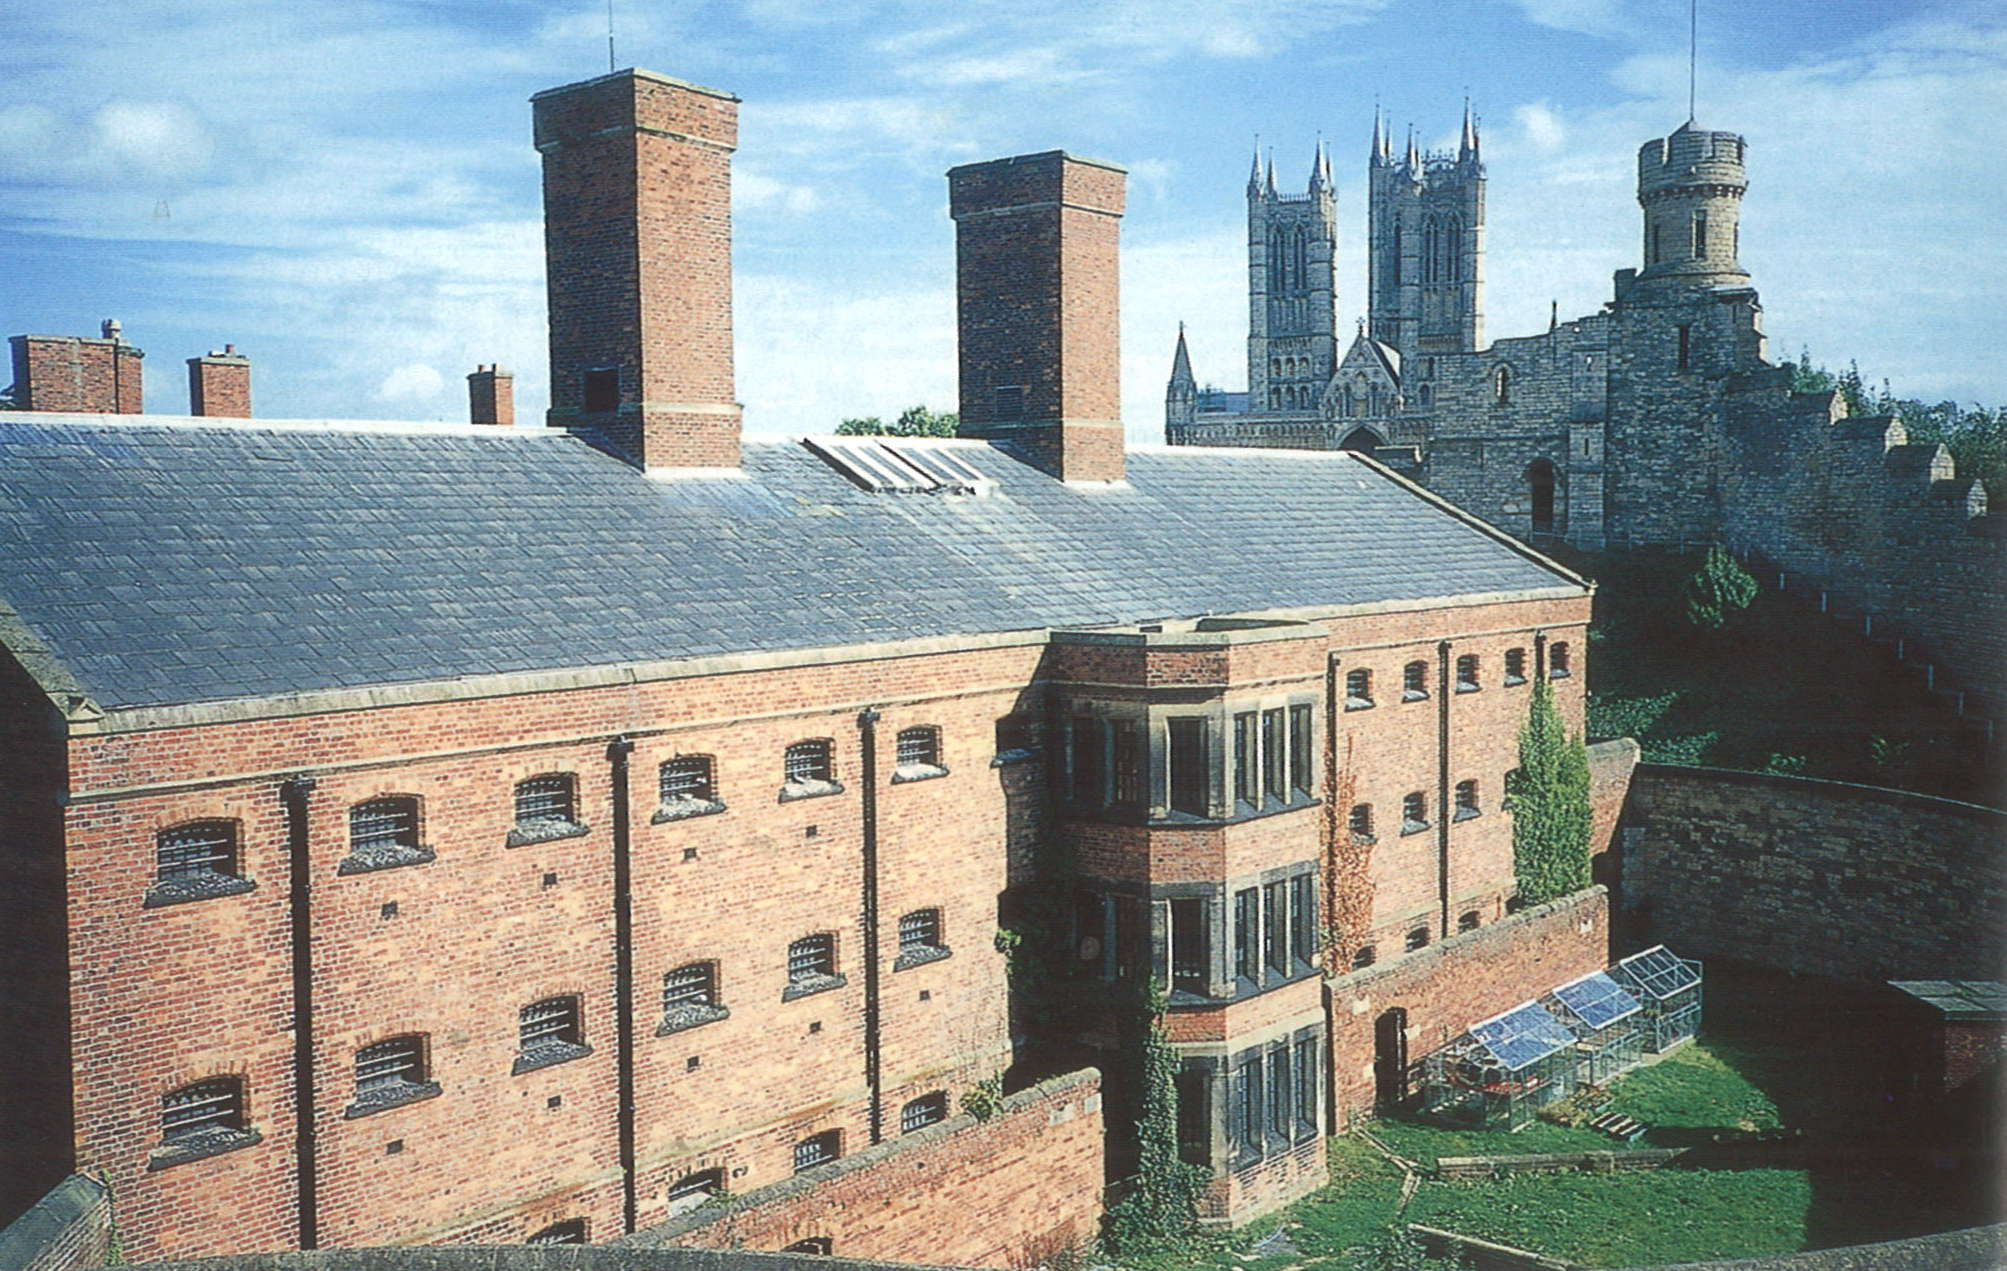 A photograph showing a large brick building in the foreground. The building has small, barred windows, a high wall, and two large chimneys. In the backgroudn can be seen Lincoln  Lincoln cathedral and the city walls.